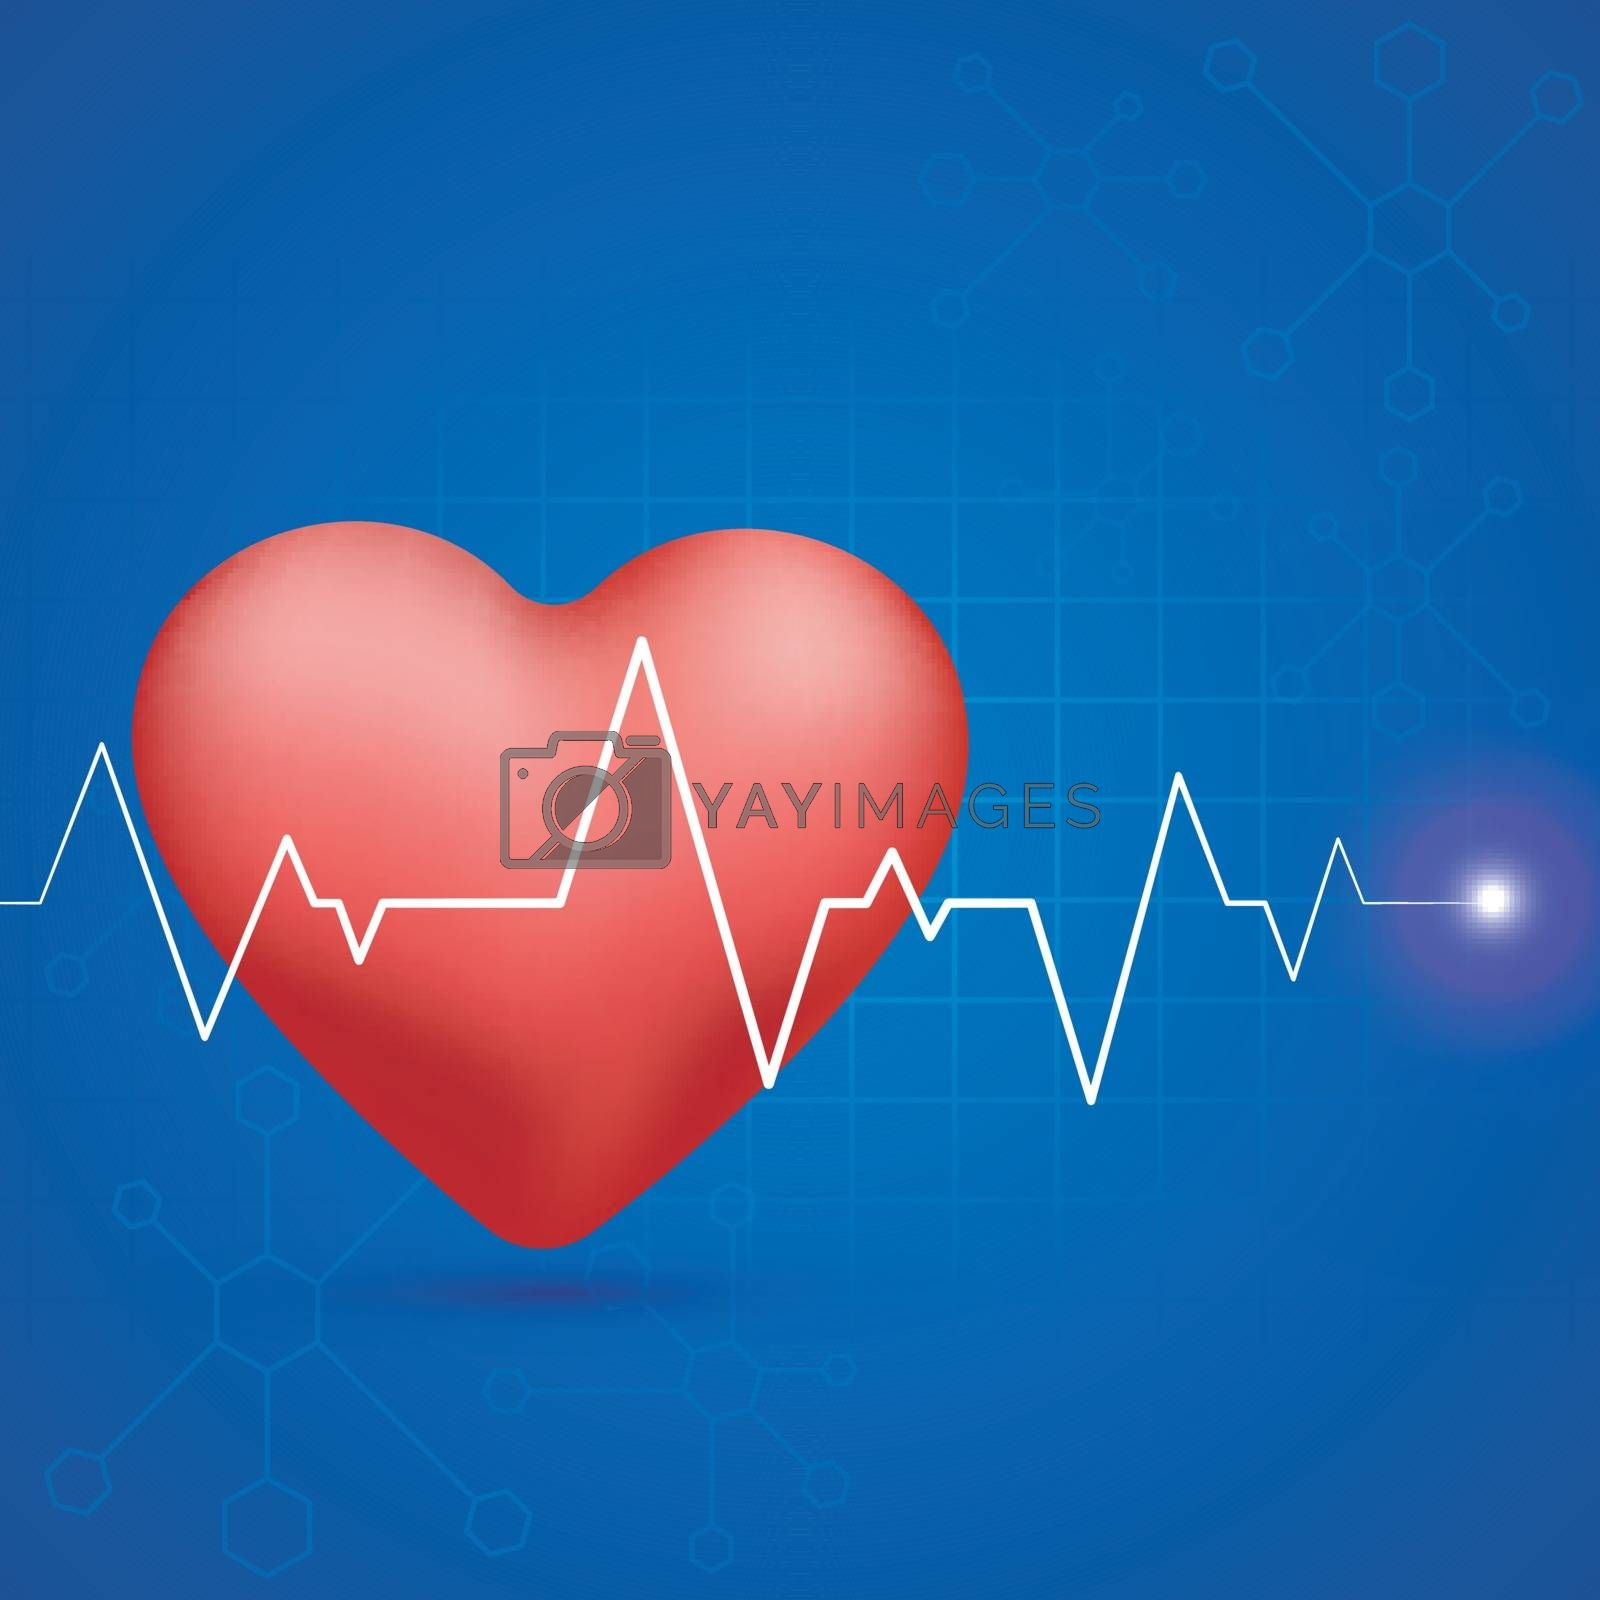 Glossy red heart with white heartbeat pulse on blue molecules background for Medical concept.